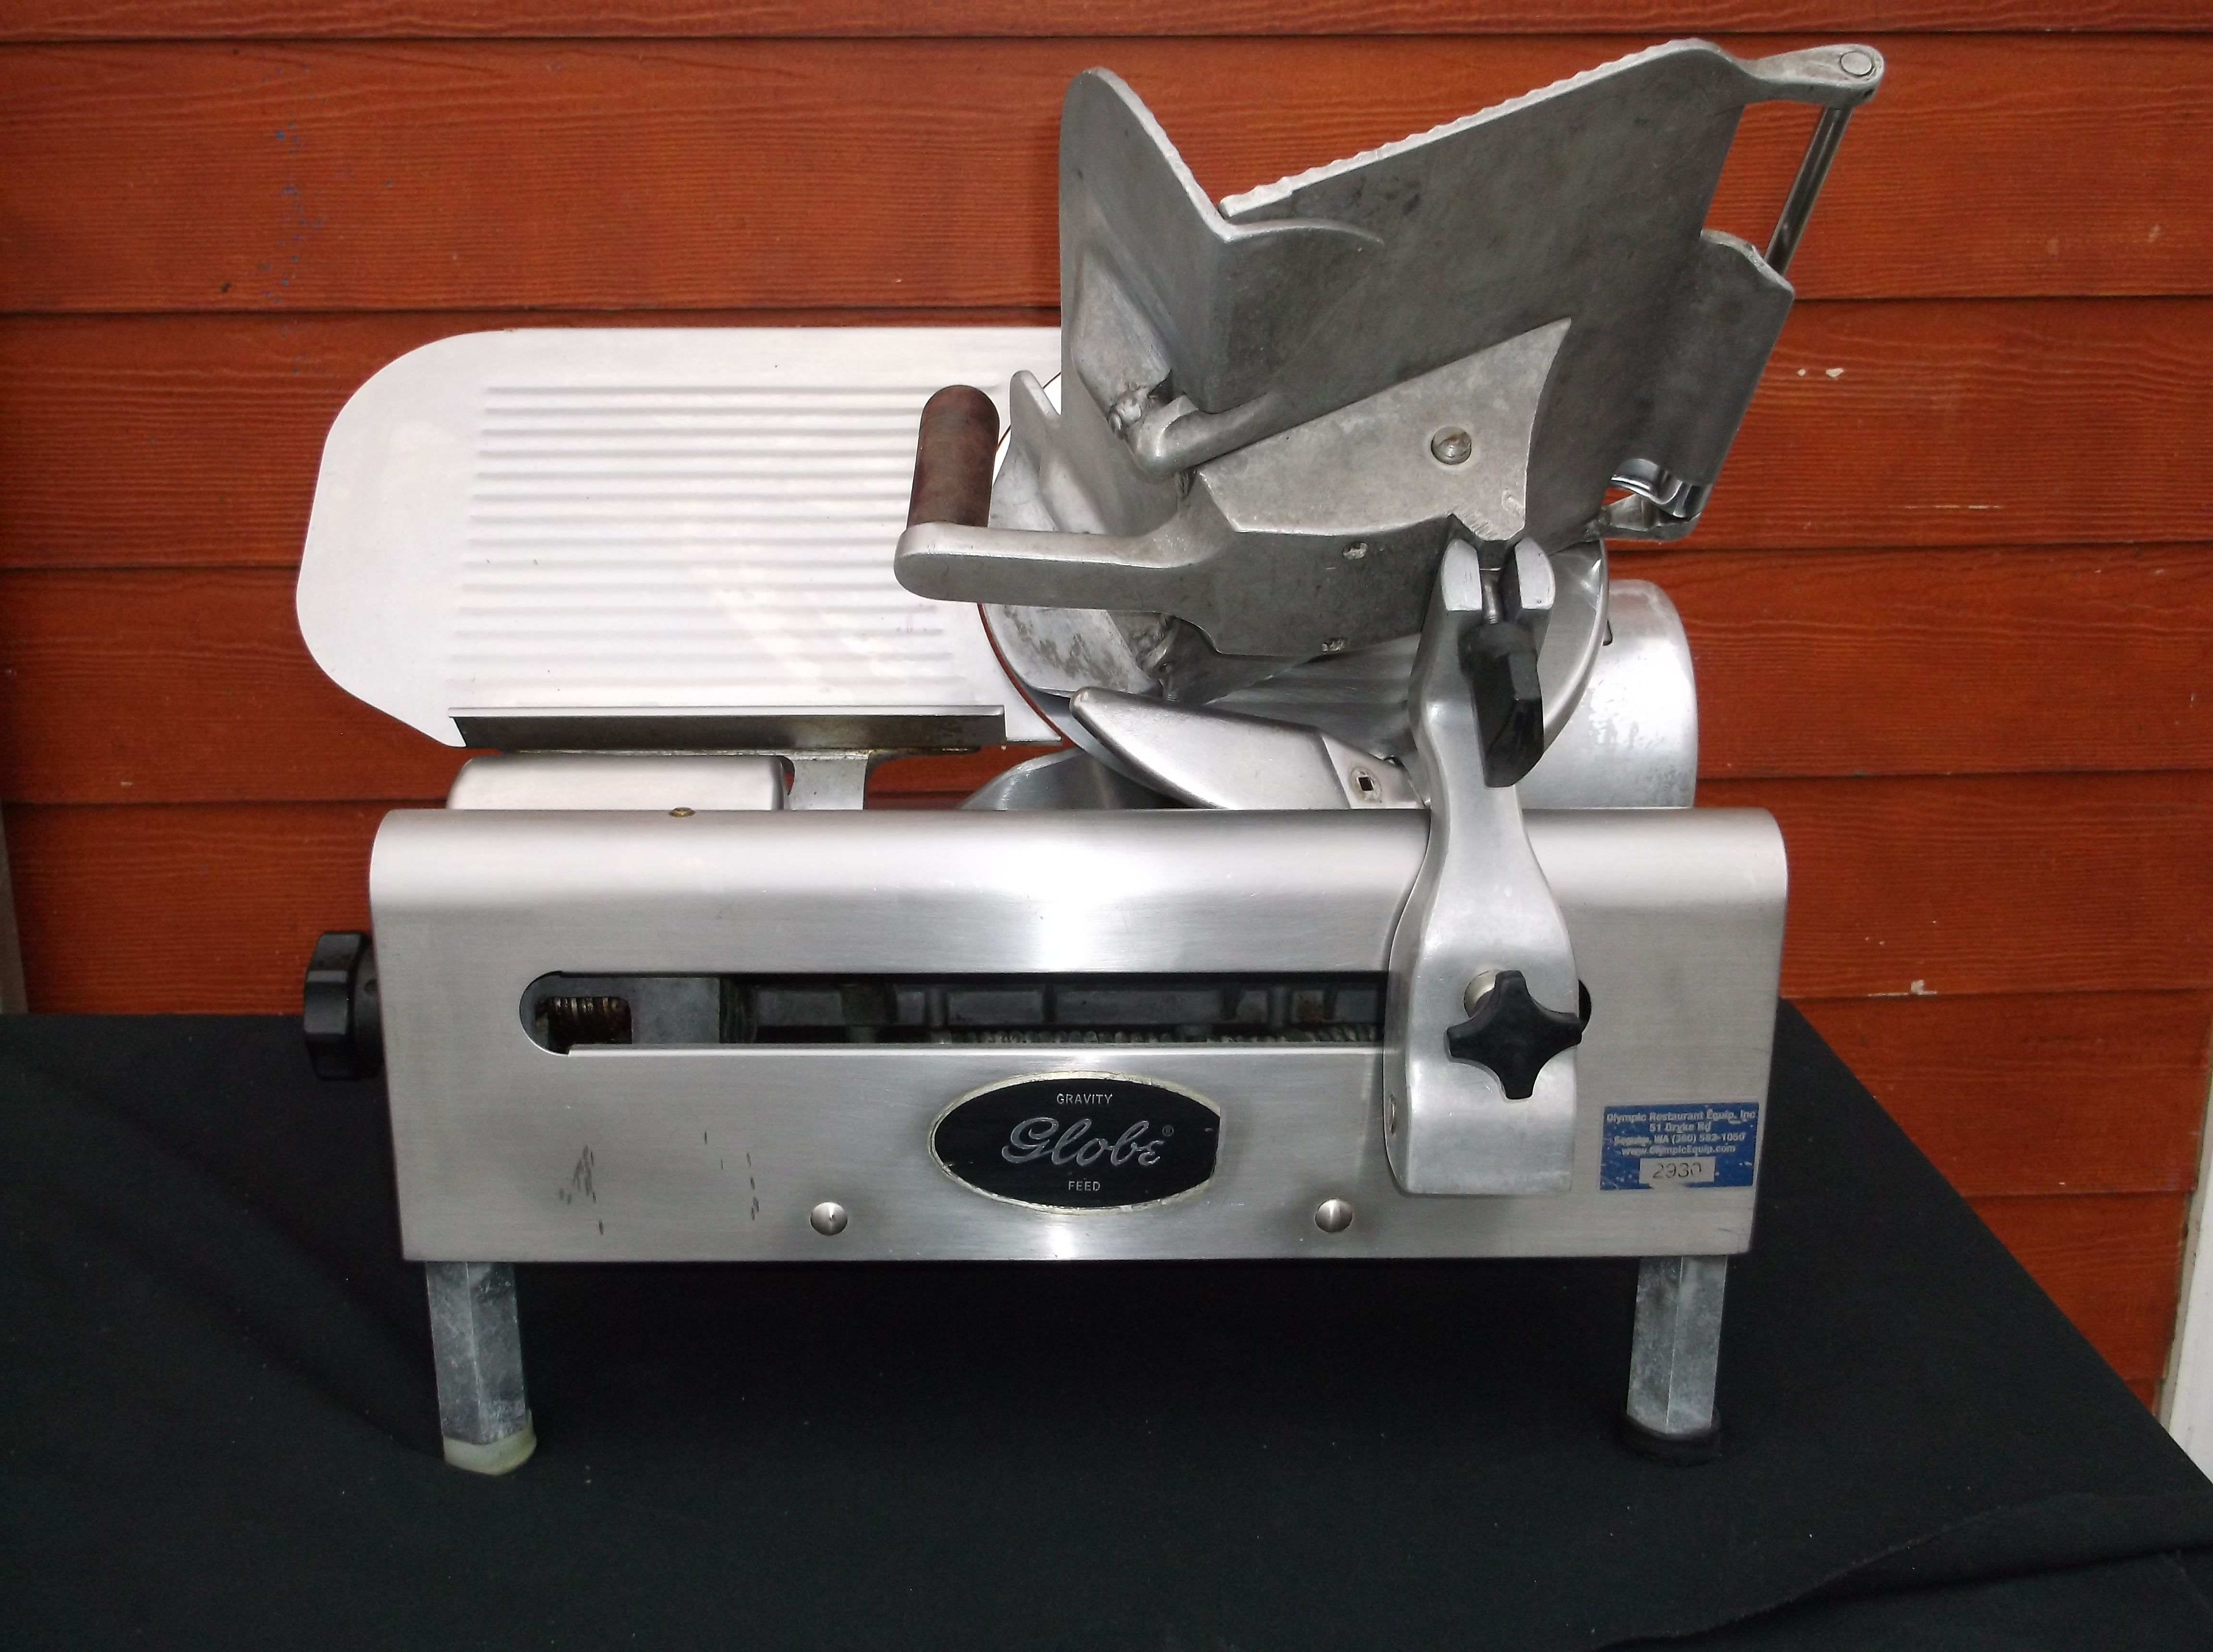 Restaurant Kitchen Operations Manual globe gravity feed slicer #500 - used ue-2930 model #500 for sale